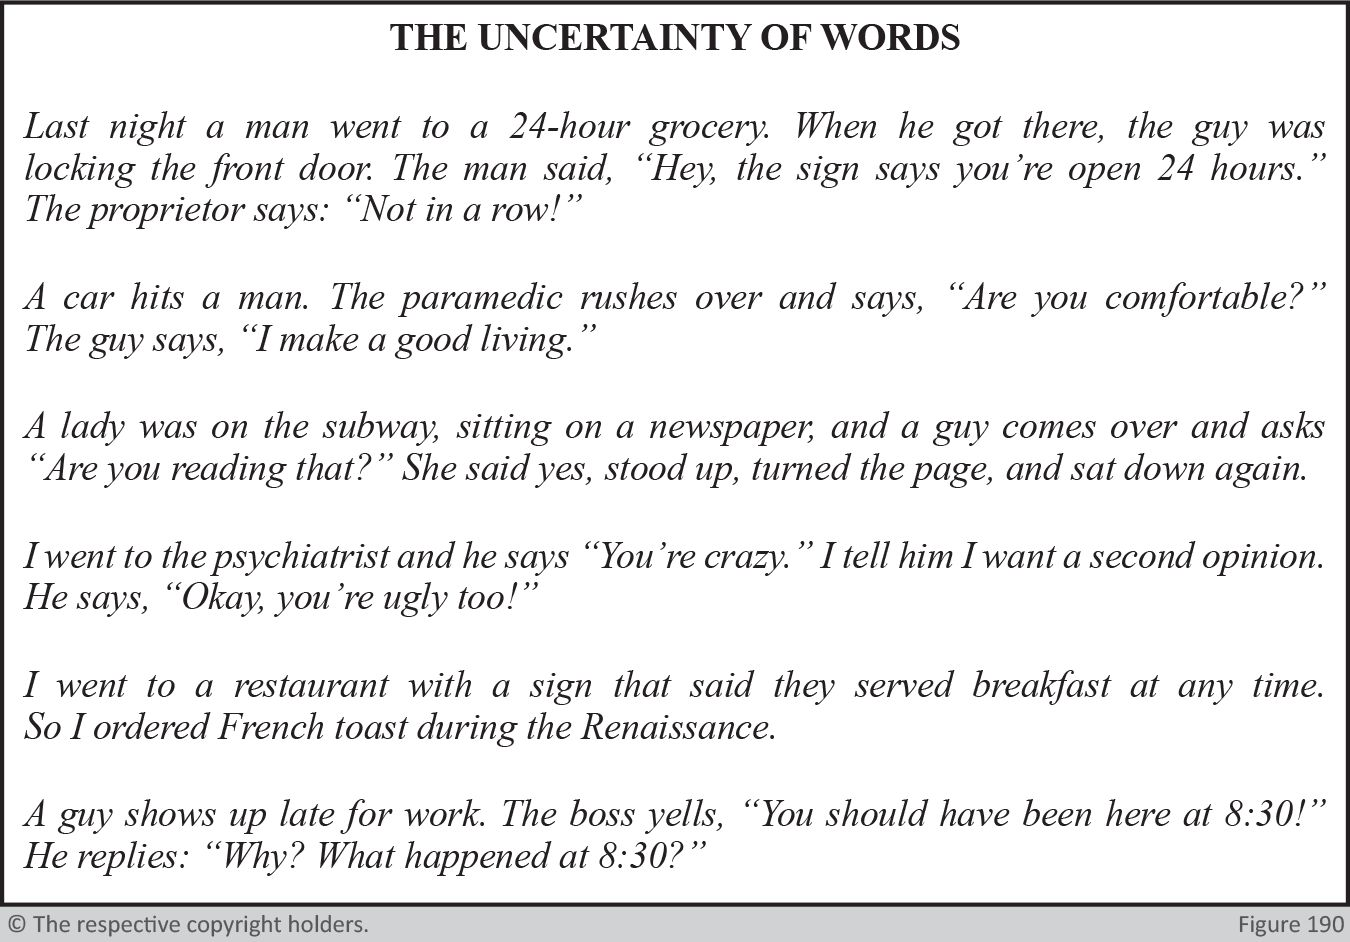 Uncertainty of Words